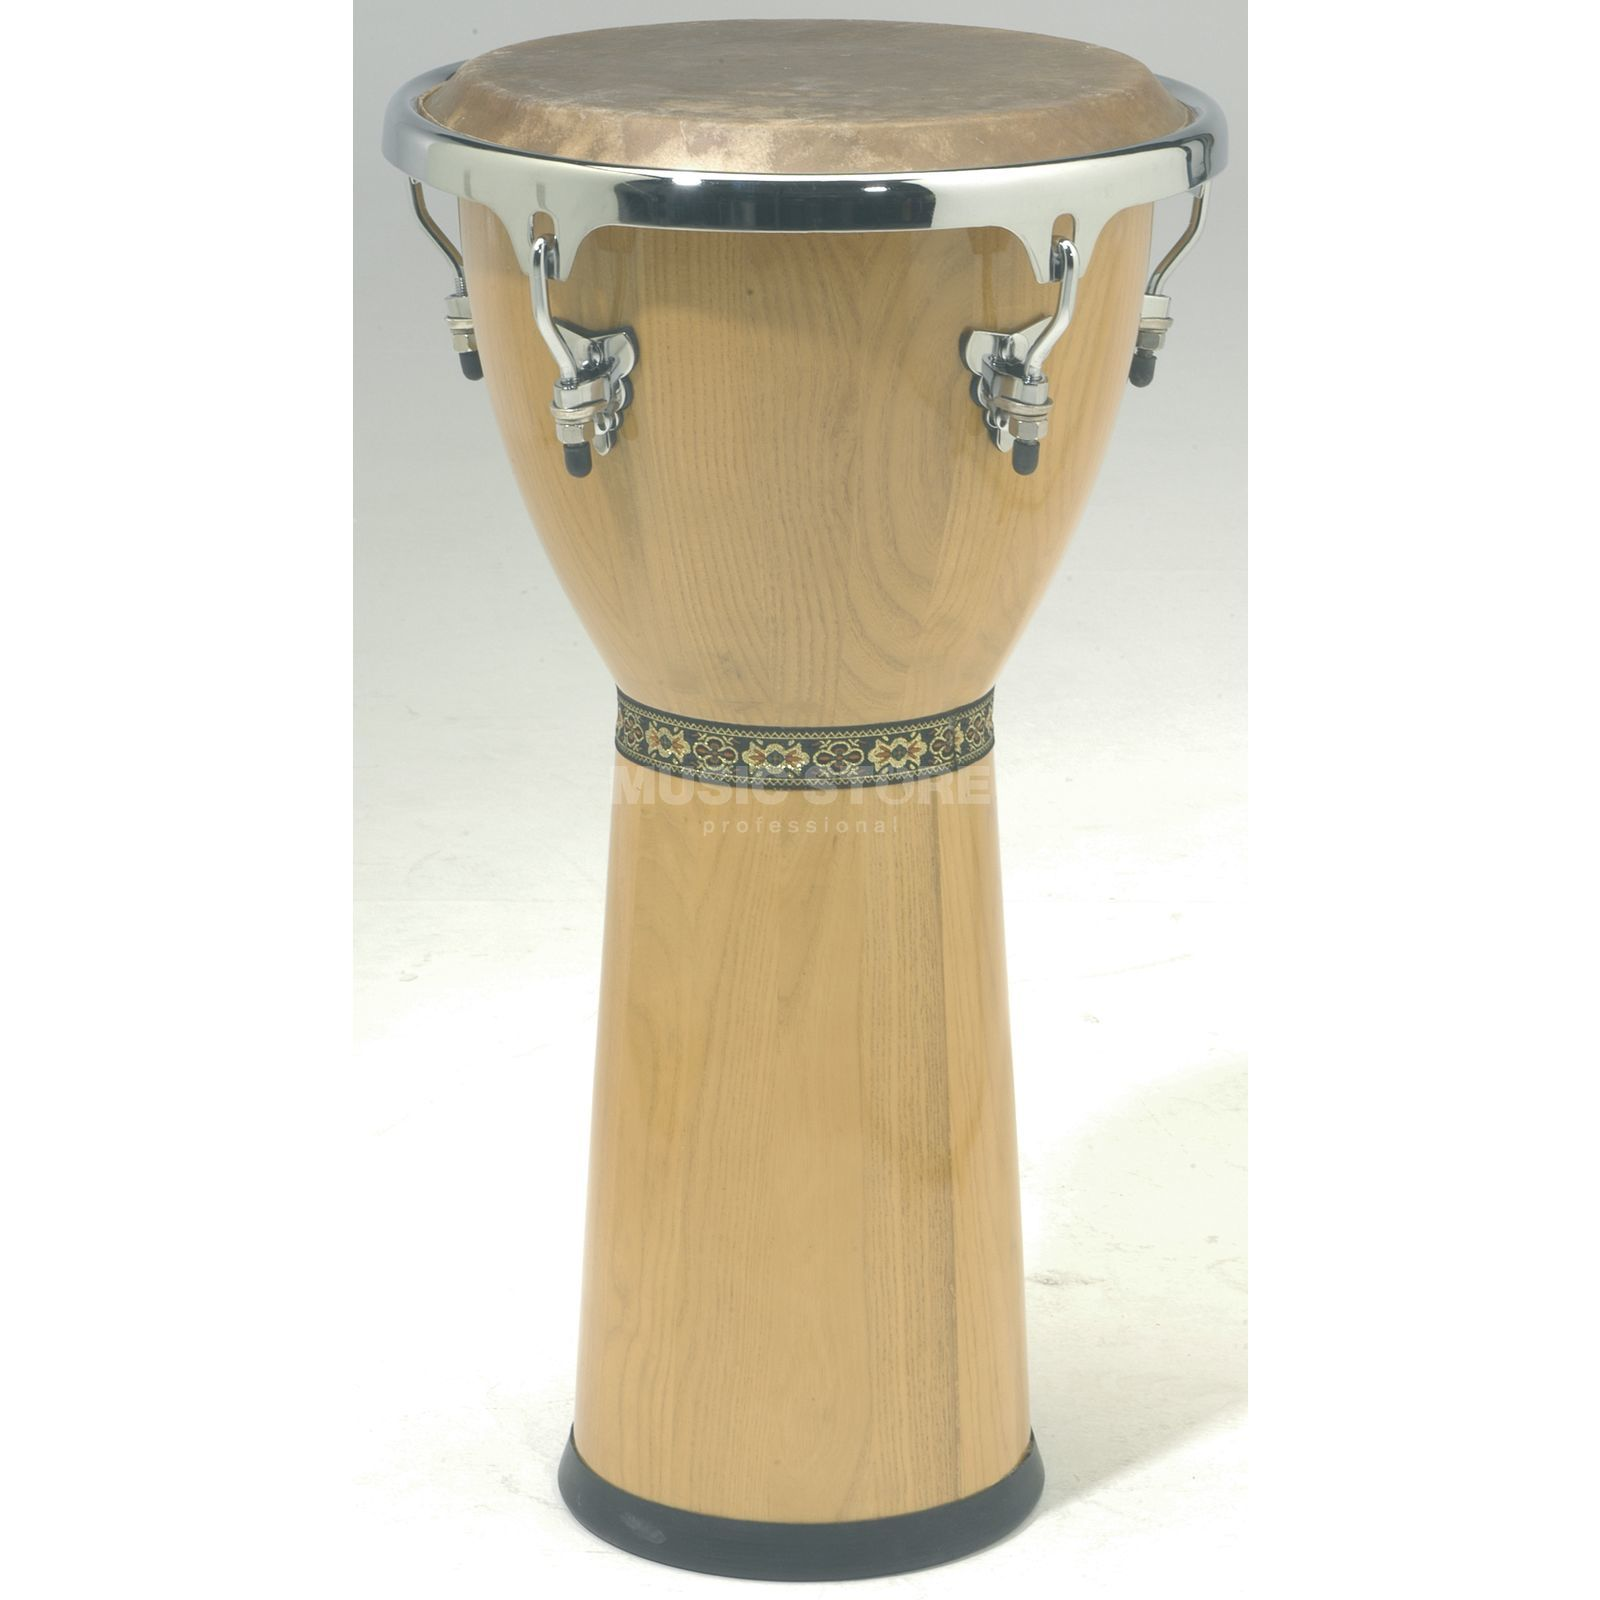 "Sonor Champion Djembe CD12NHG 12"" Natural Produktbild"